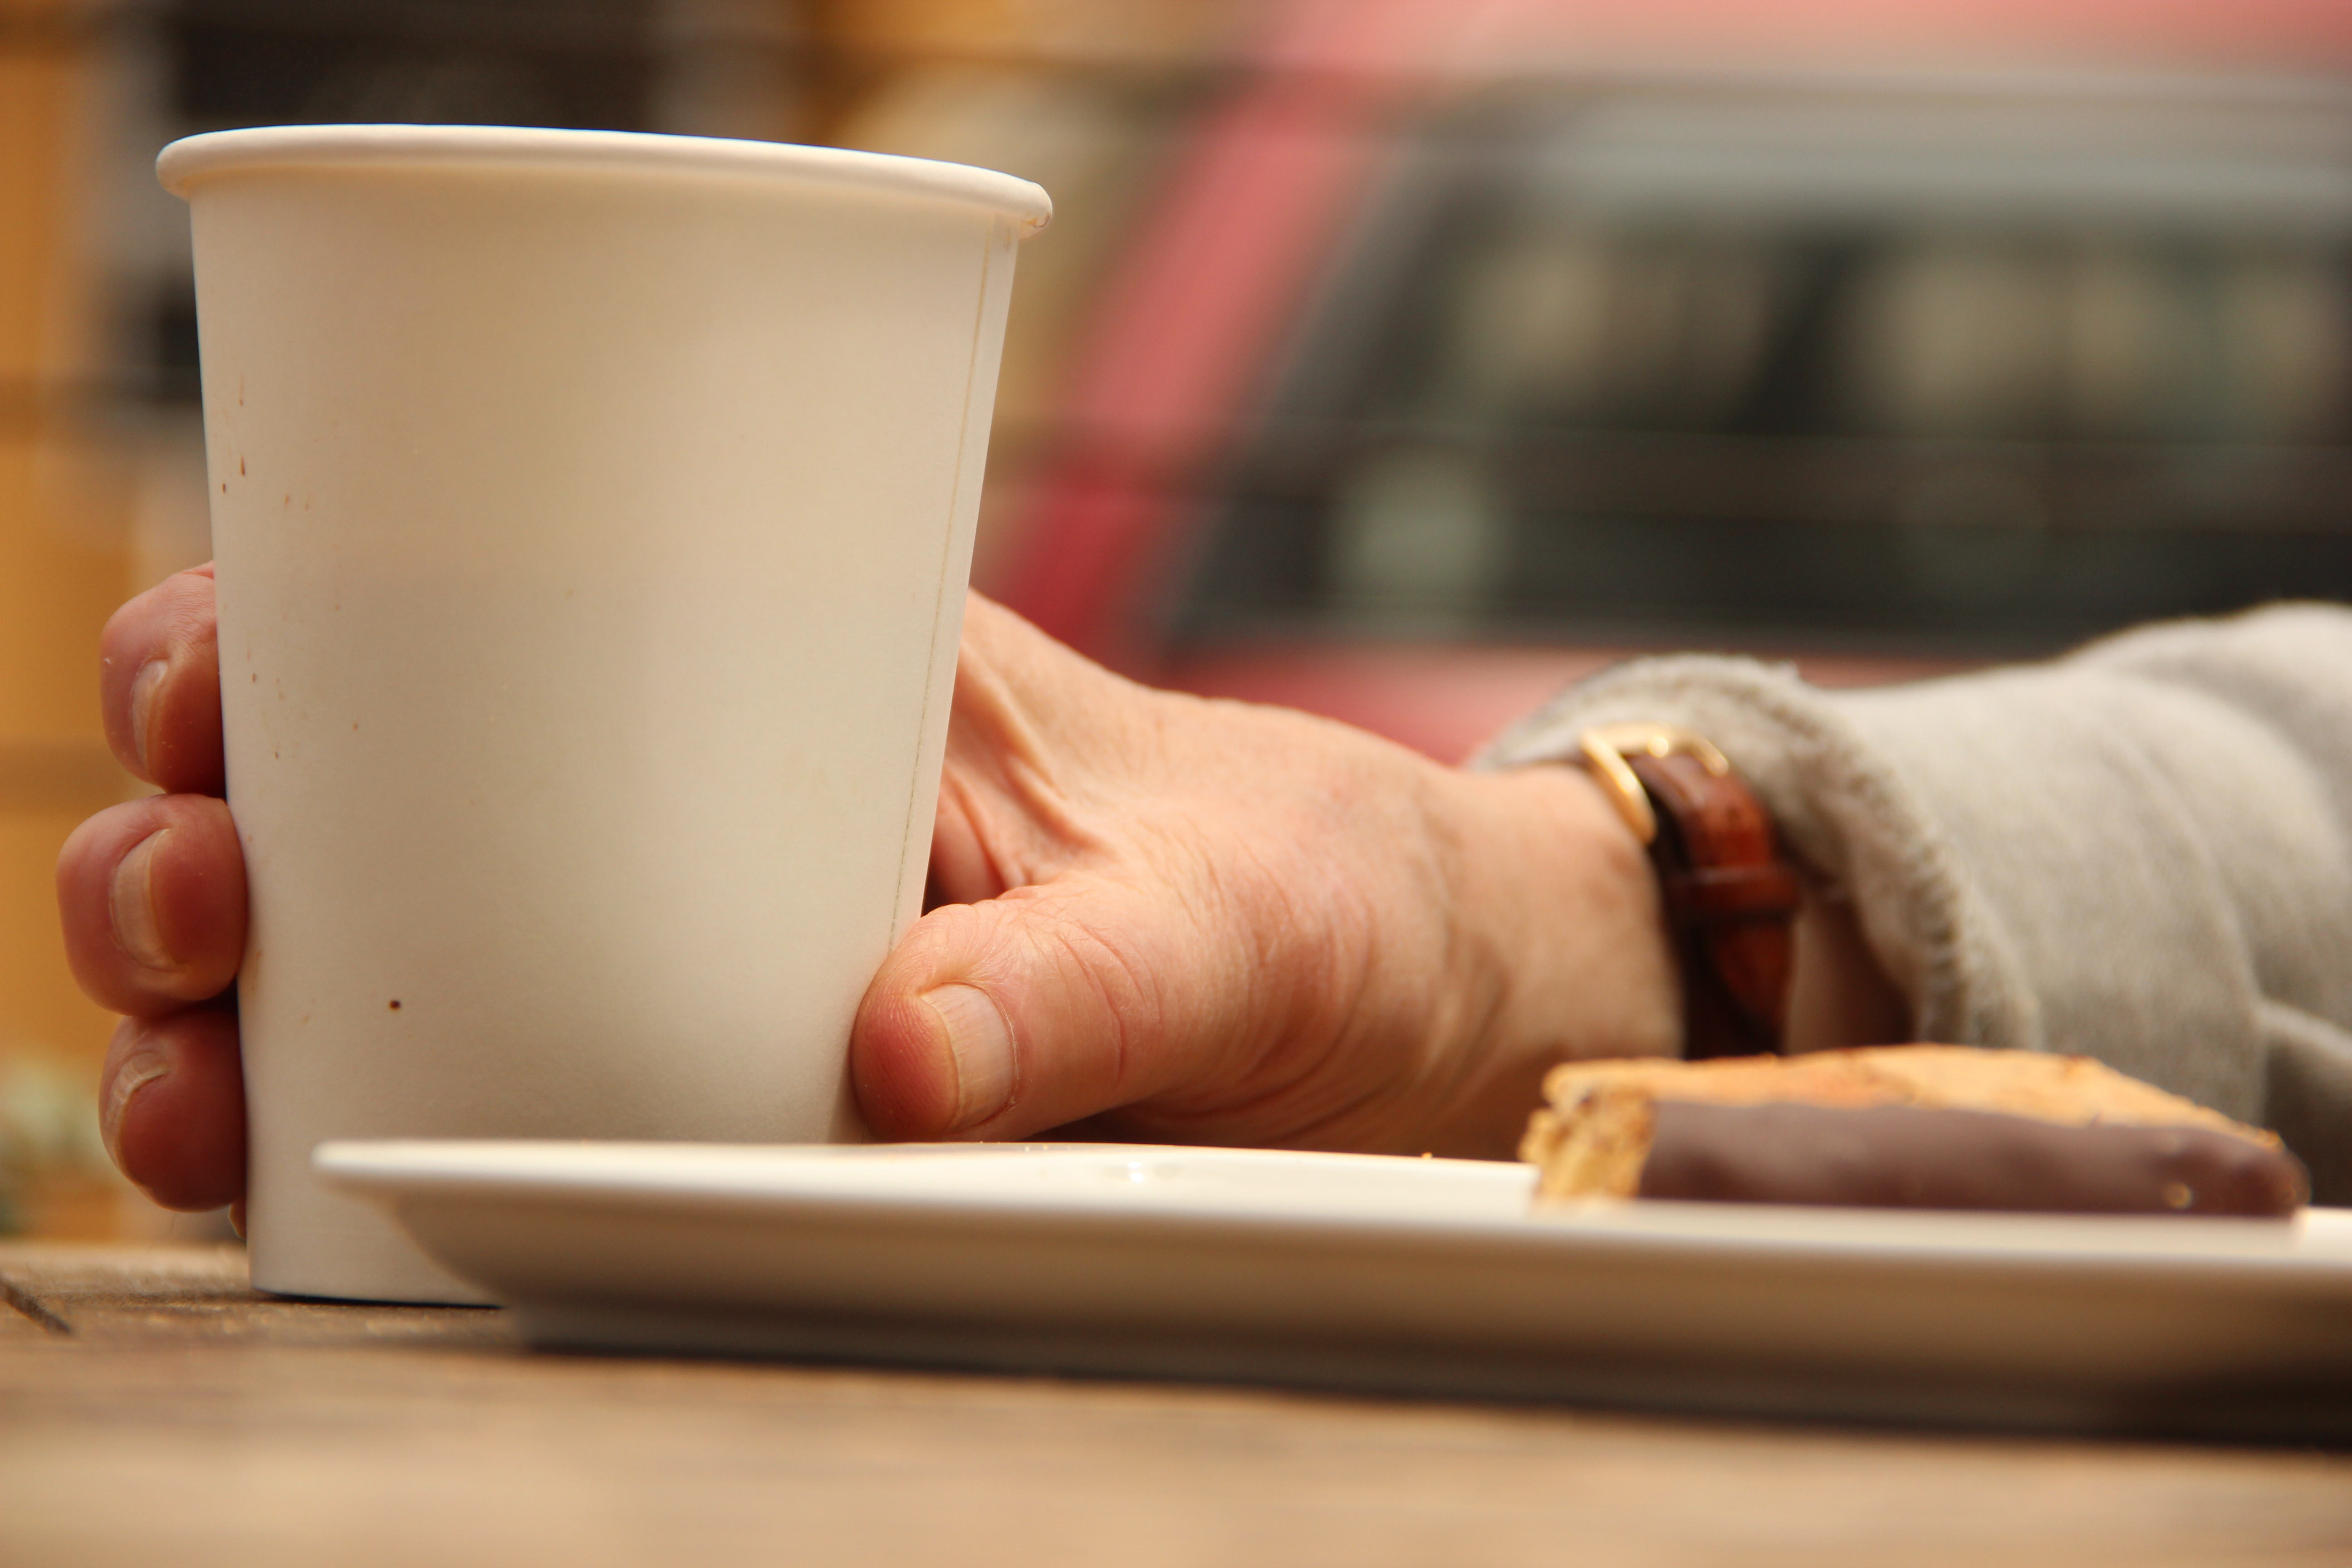 Strangers No More, One Cup of Tea at a Time